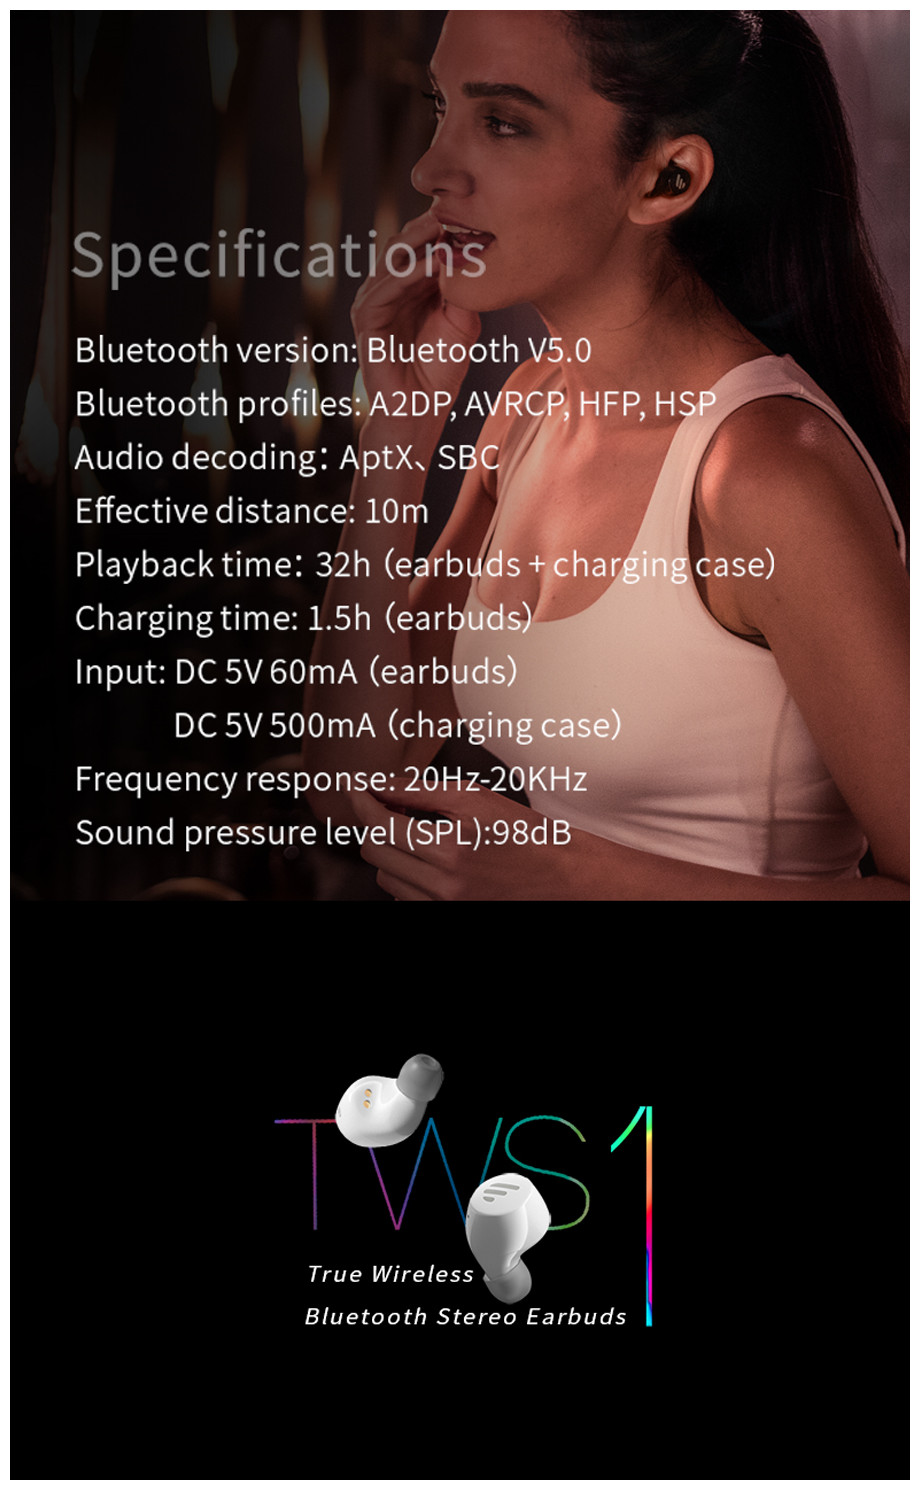 EDIFIER TWS1 bluetooth V5.0 True Wireless Stereo Earbuds Touch Control IPX5 Waterproof Earphone Headphone Support APTX